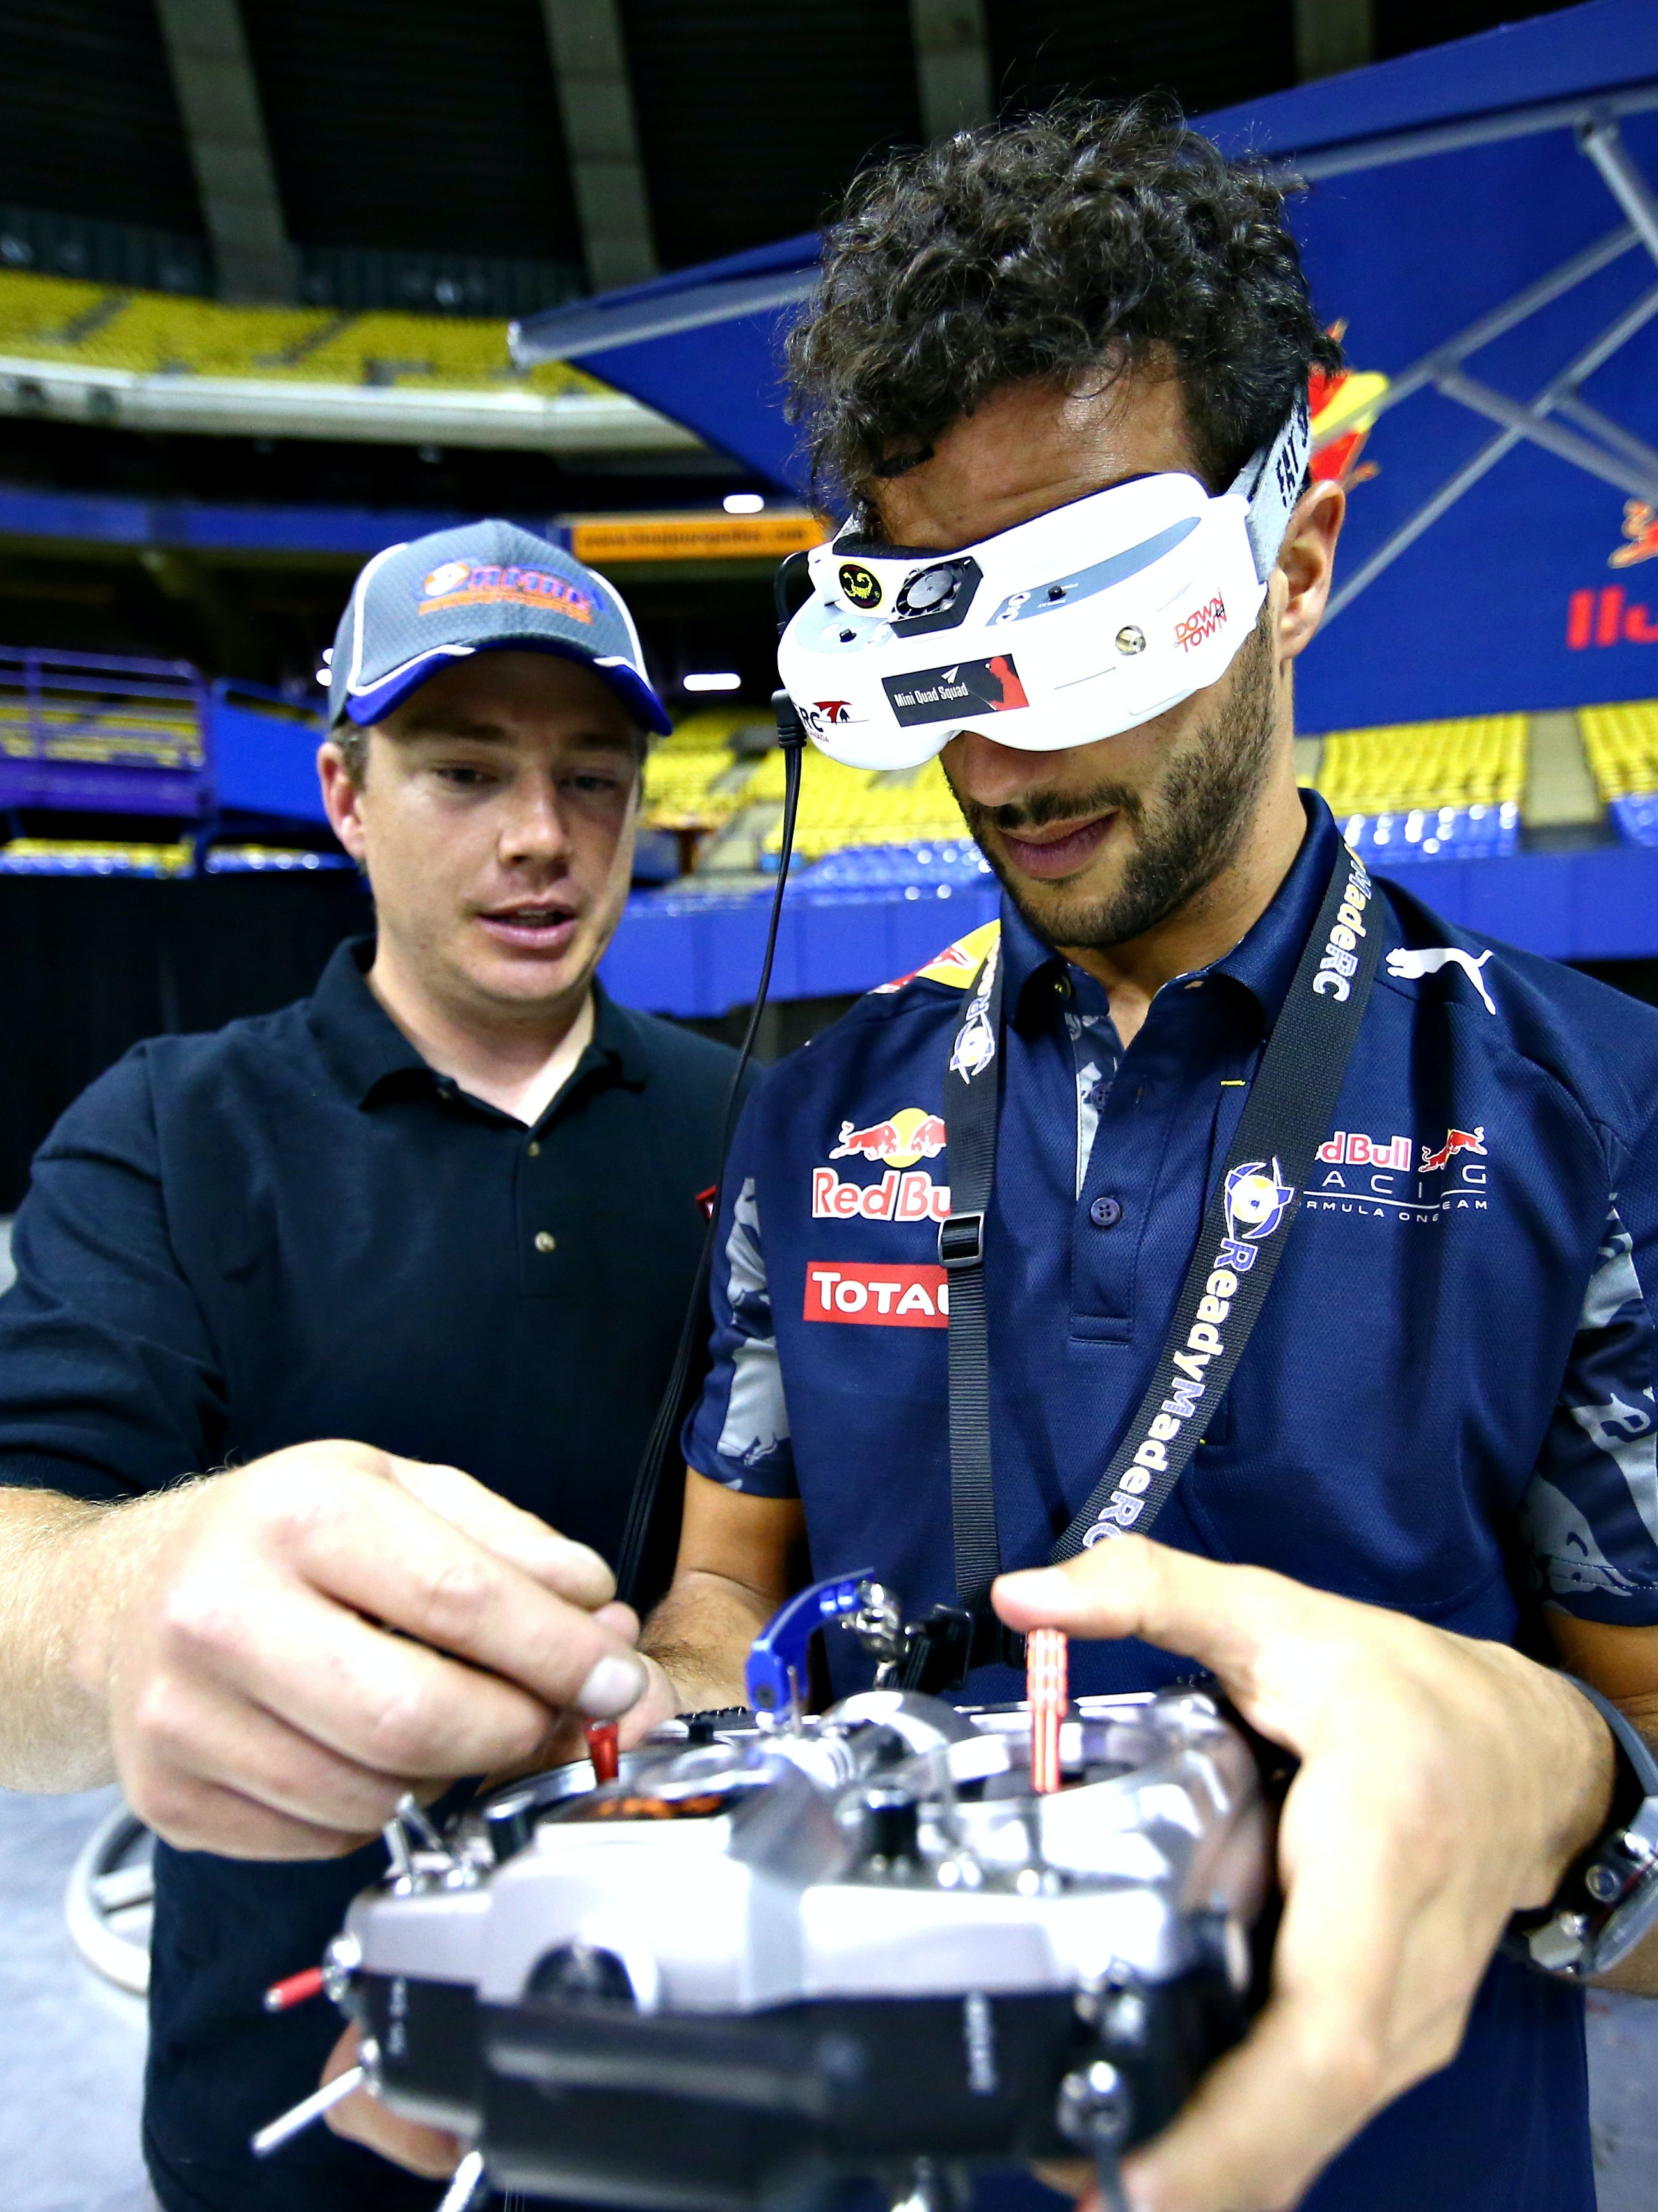 MONTREAL, QC - JUNE 08:  Daniel Ricciardo of Australia and Red Bull Racing races a drone during previews to the Canadian Formula One Grand Prix at Circuit Gilles Villeneuve on June 8, 2016 in Montreal, Canada.  (Photo by Dan Istitene/Getty Images)